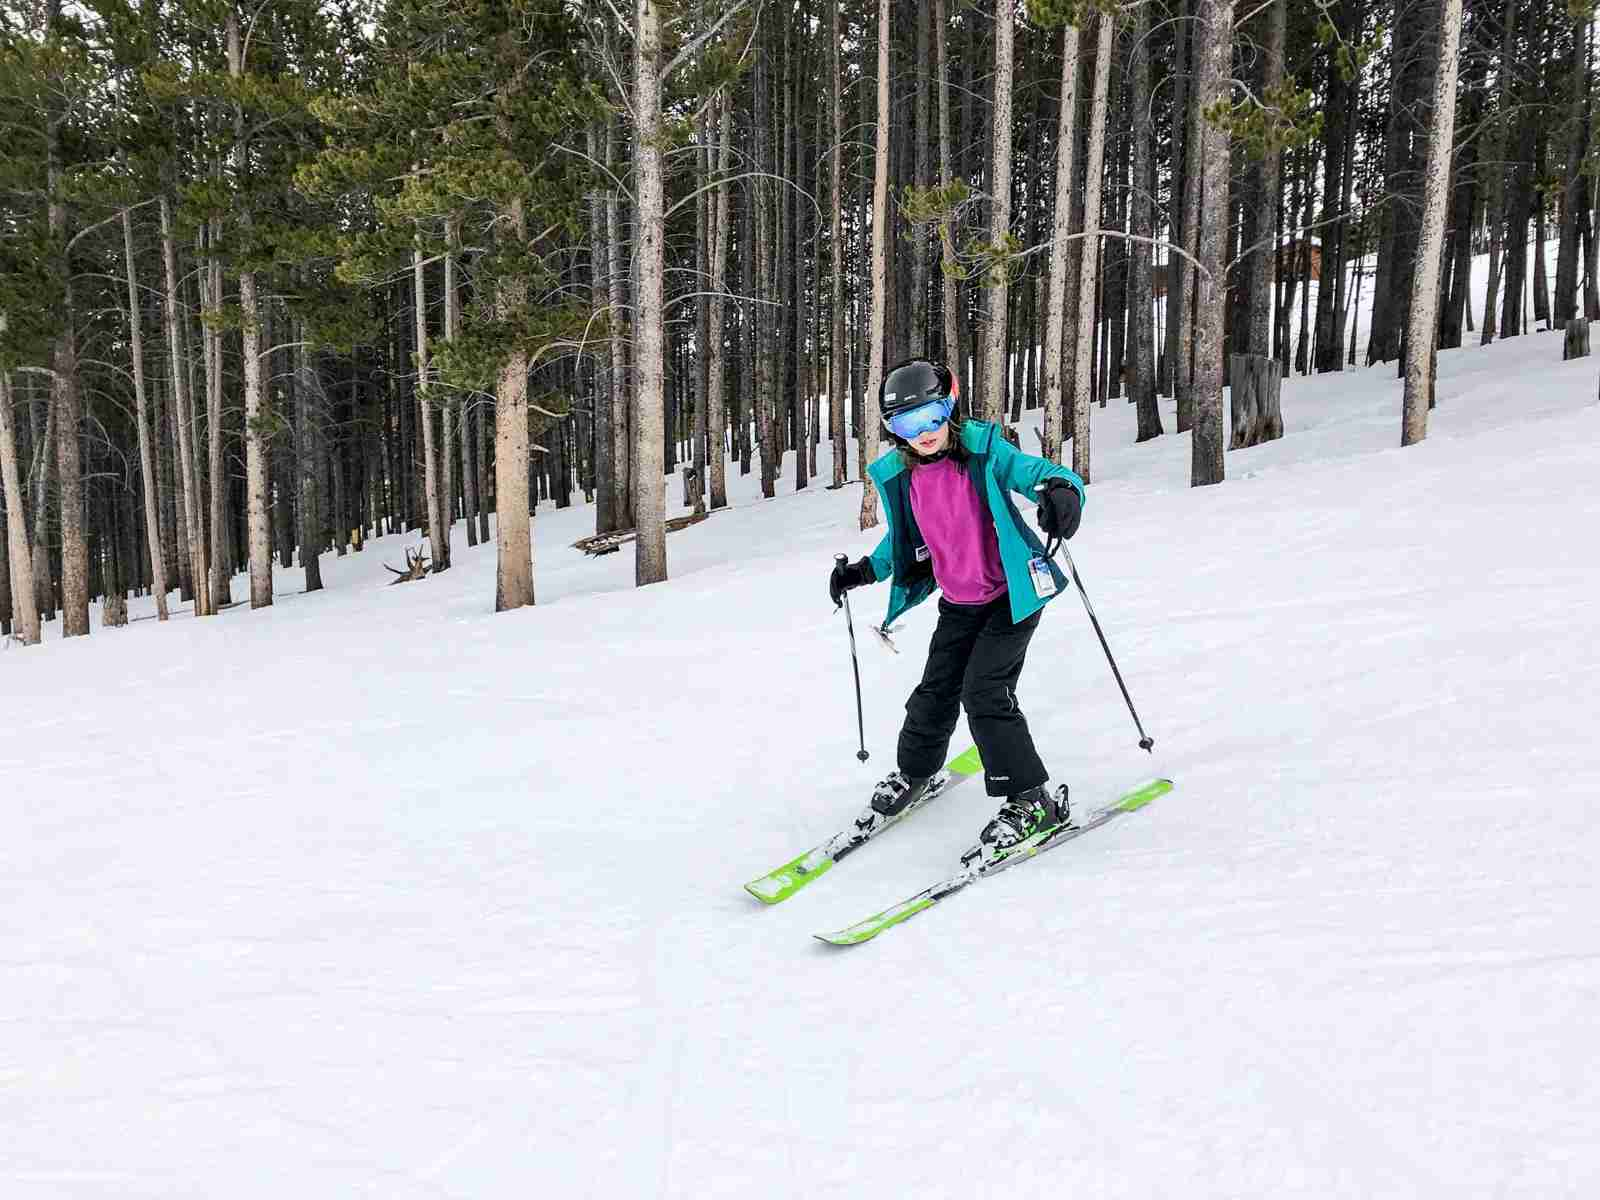 At 9, my oldest daughter now (thankfully) loves to ski.